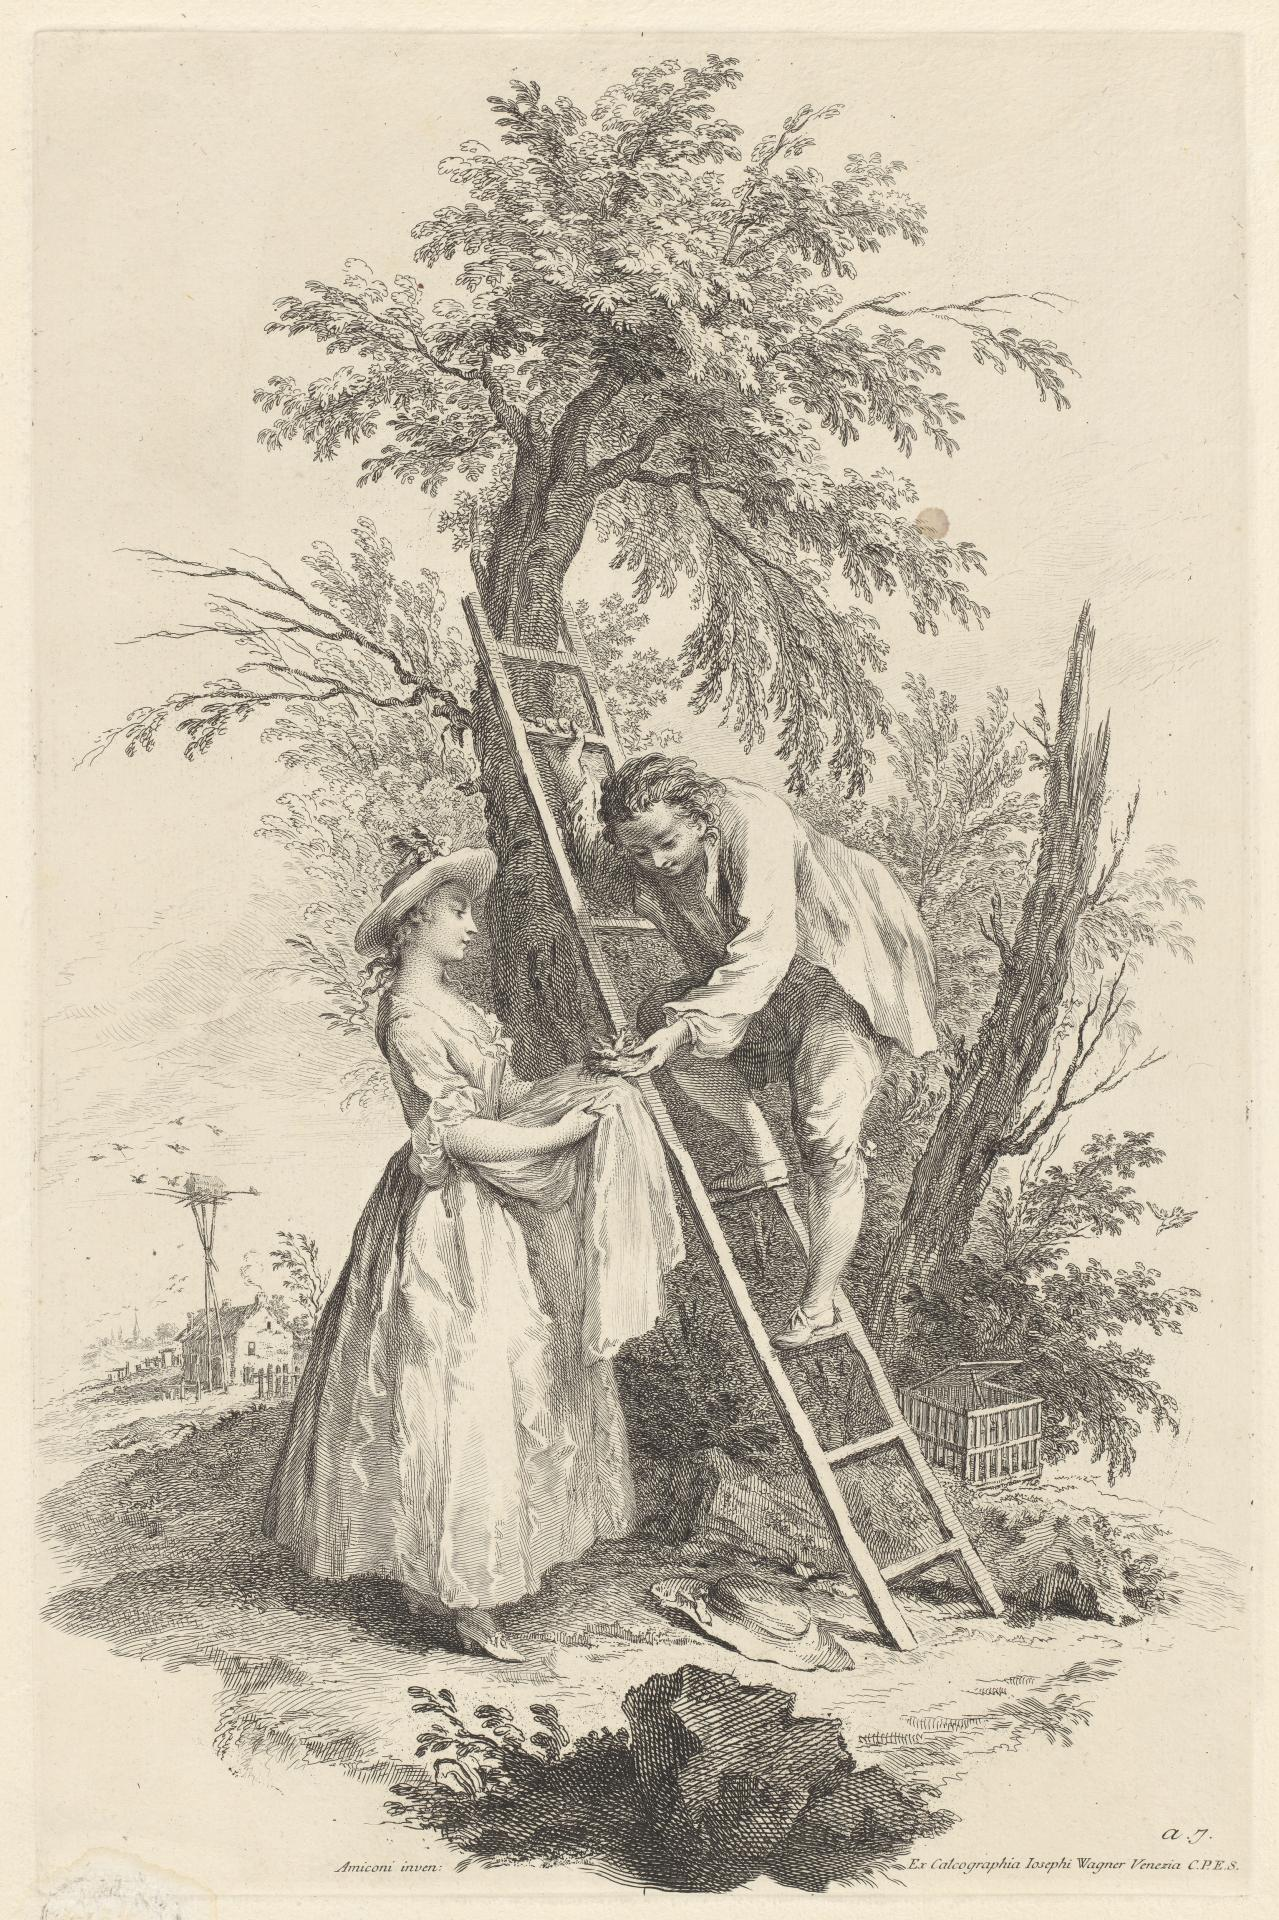 Air: Peasant handing a nest with birds to a girl